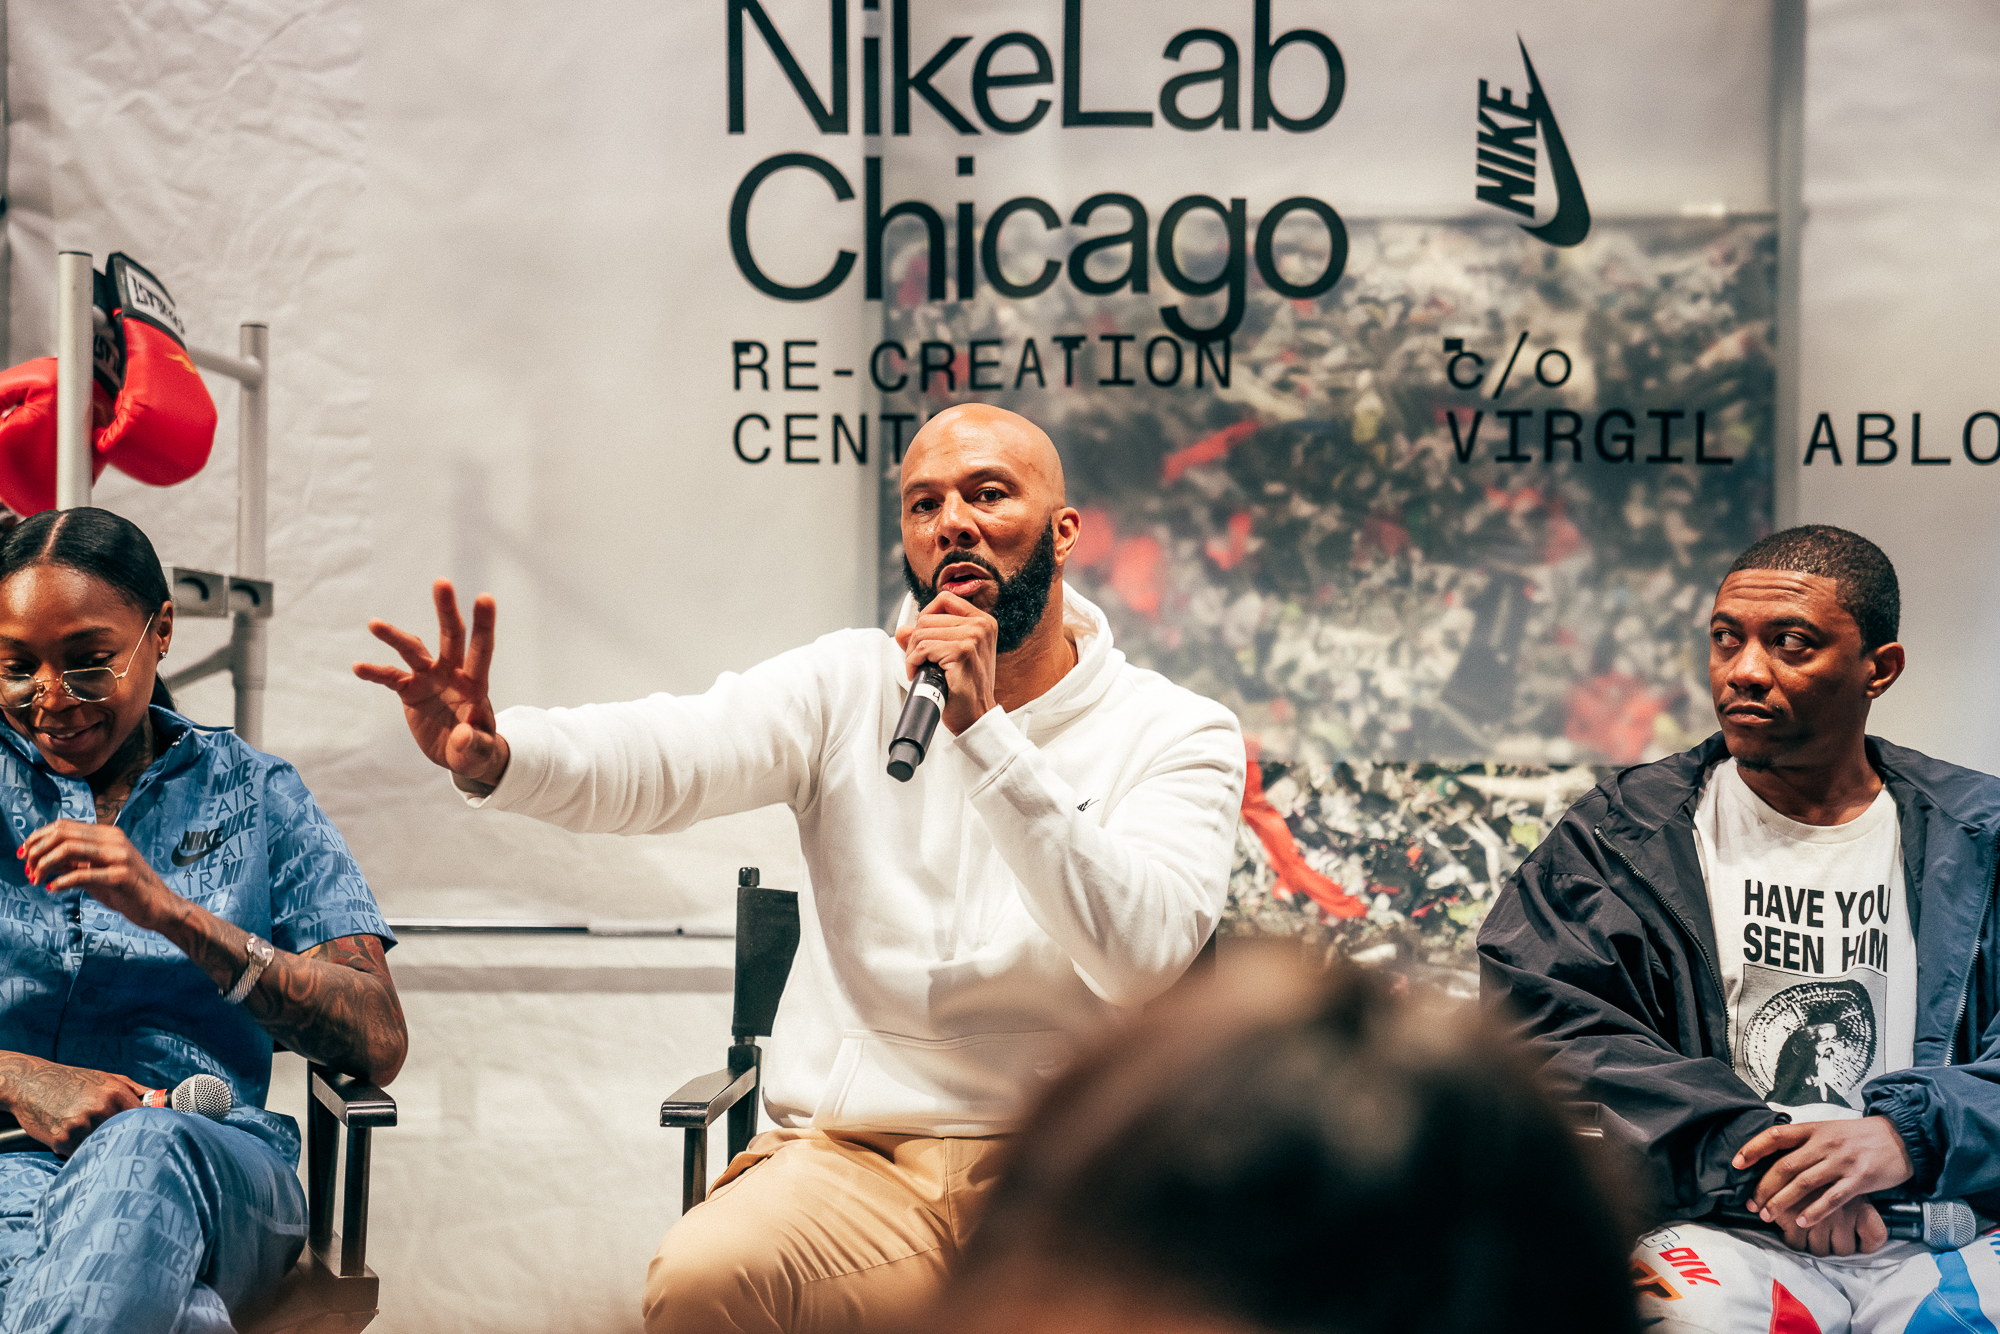 NikeLab Chicago Virgil Abloh Common